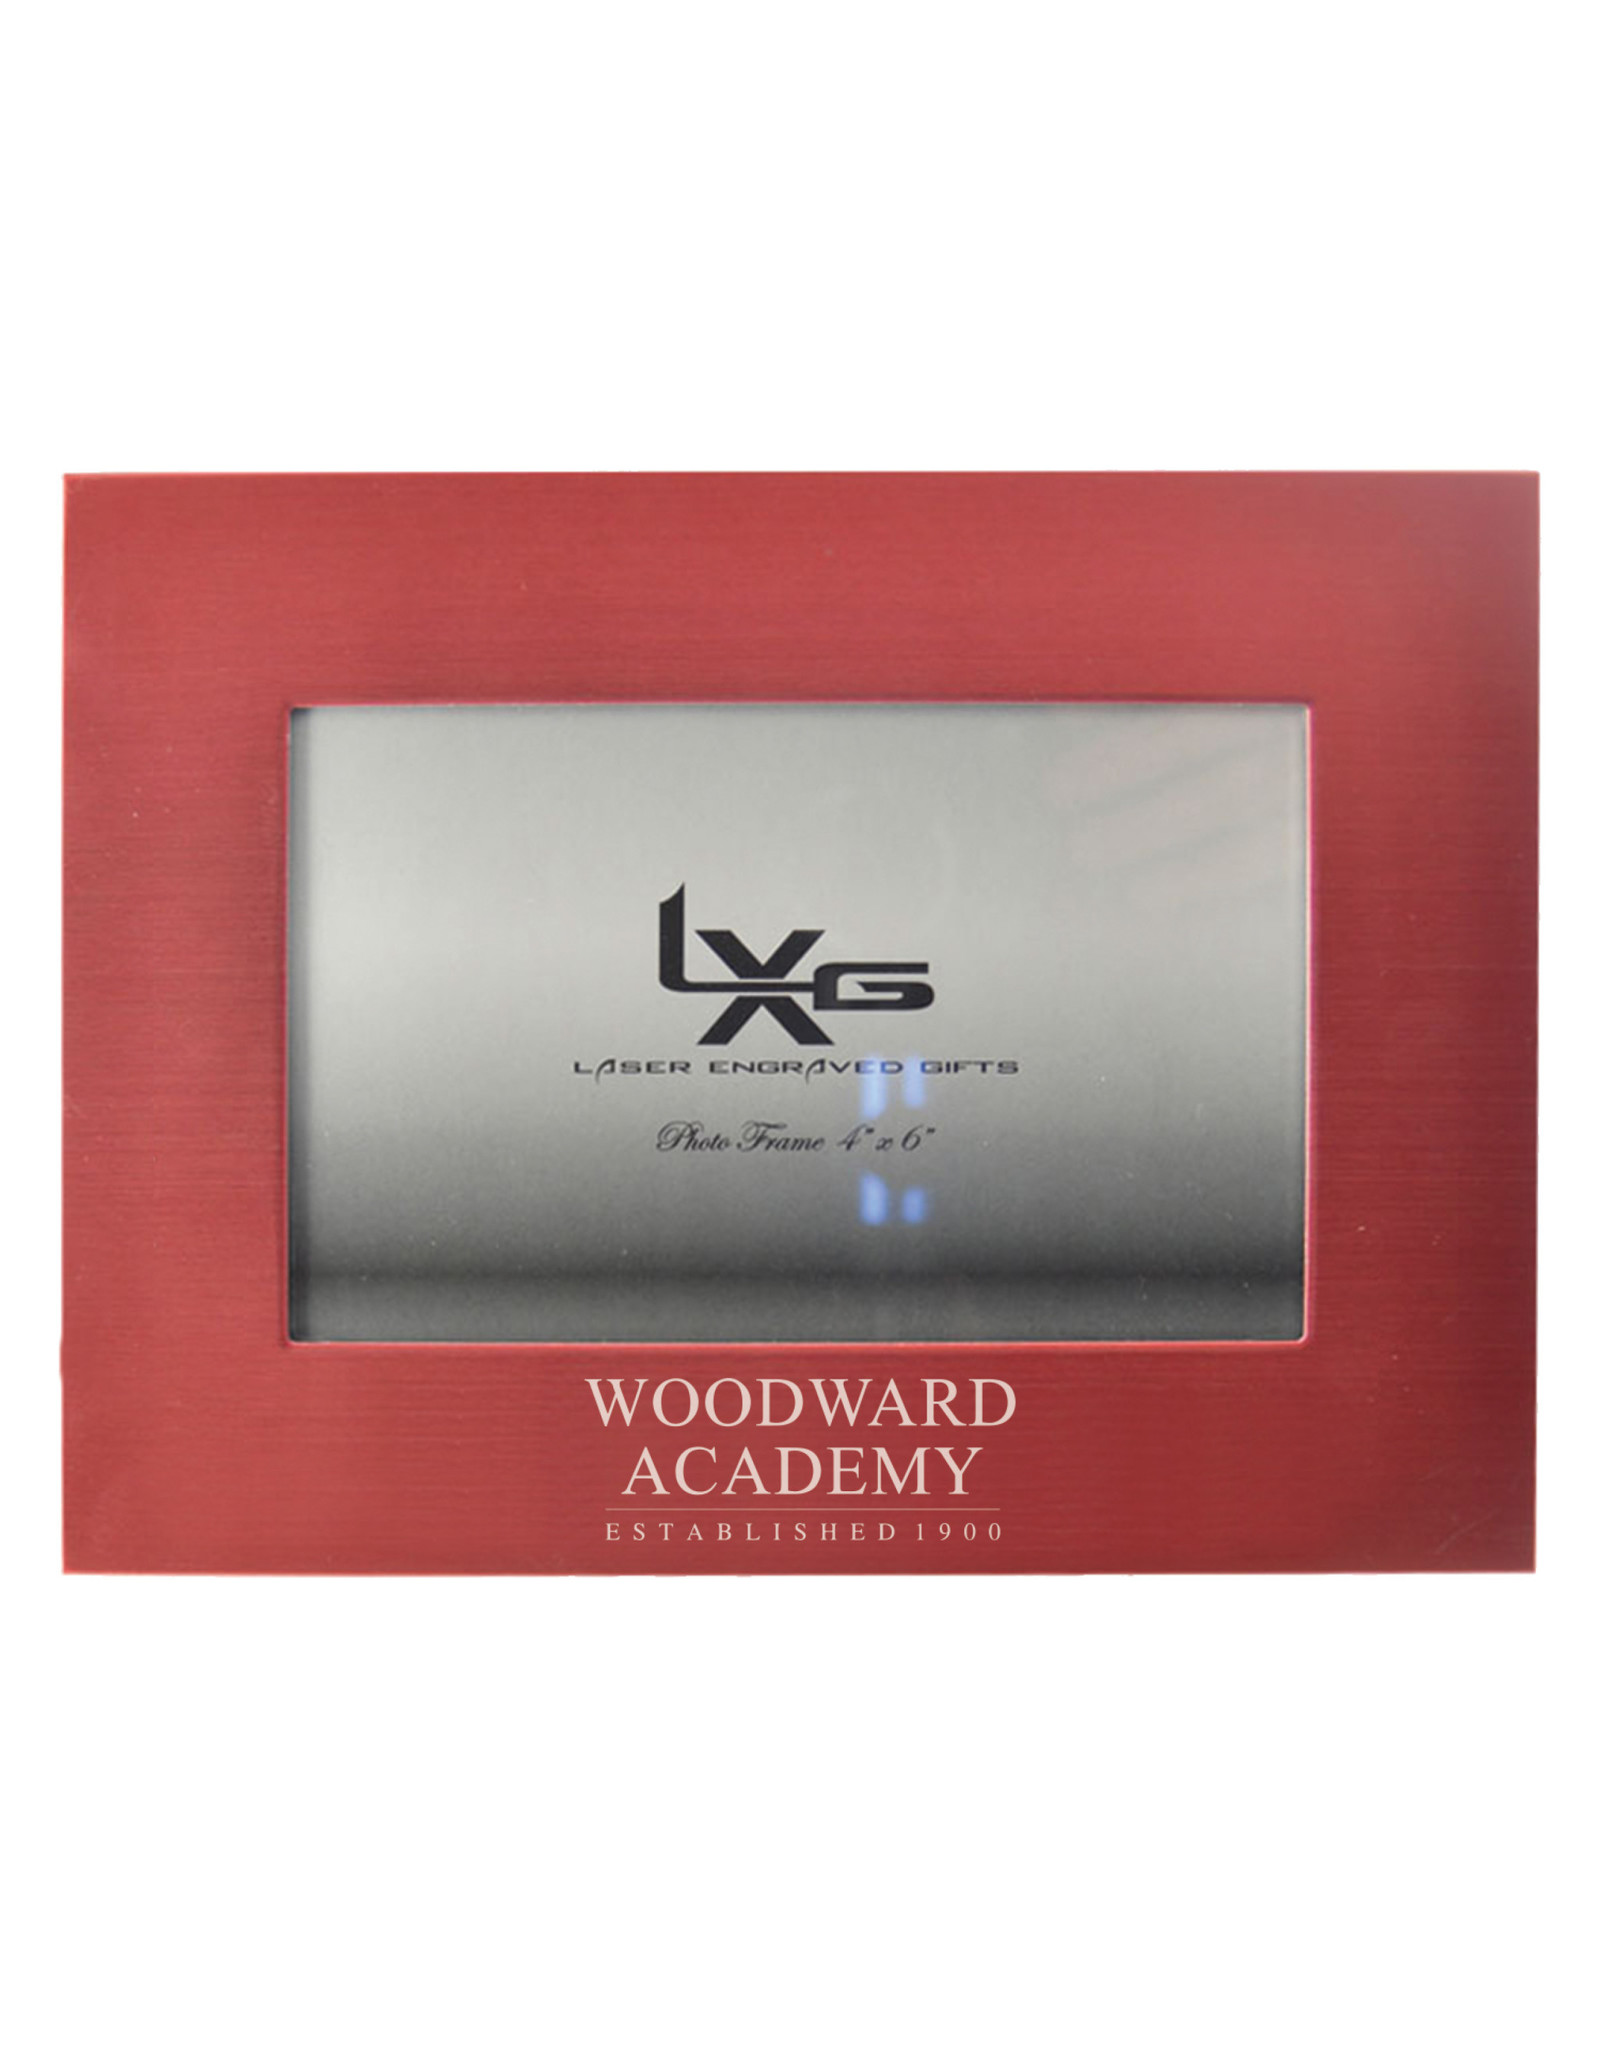 LXG Frame - 4x6 Red Matte by LXG